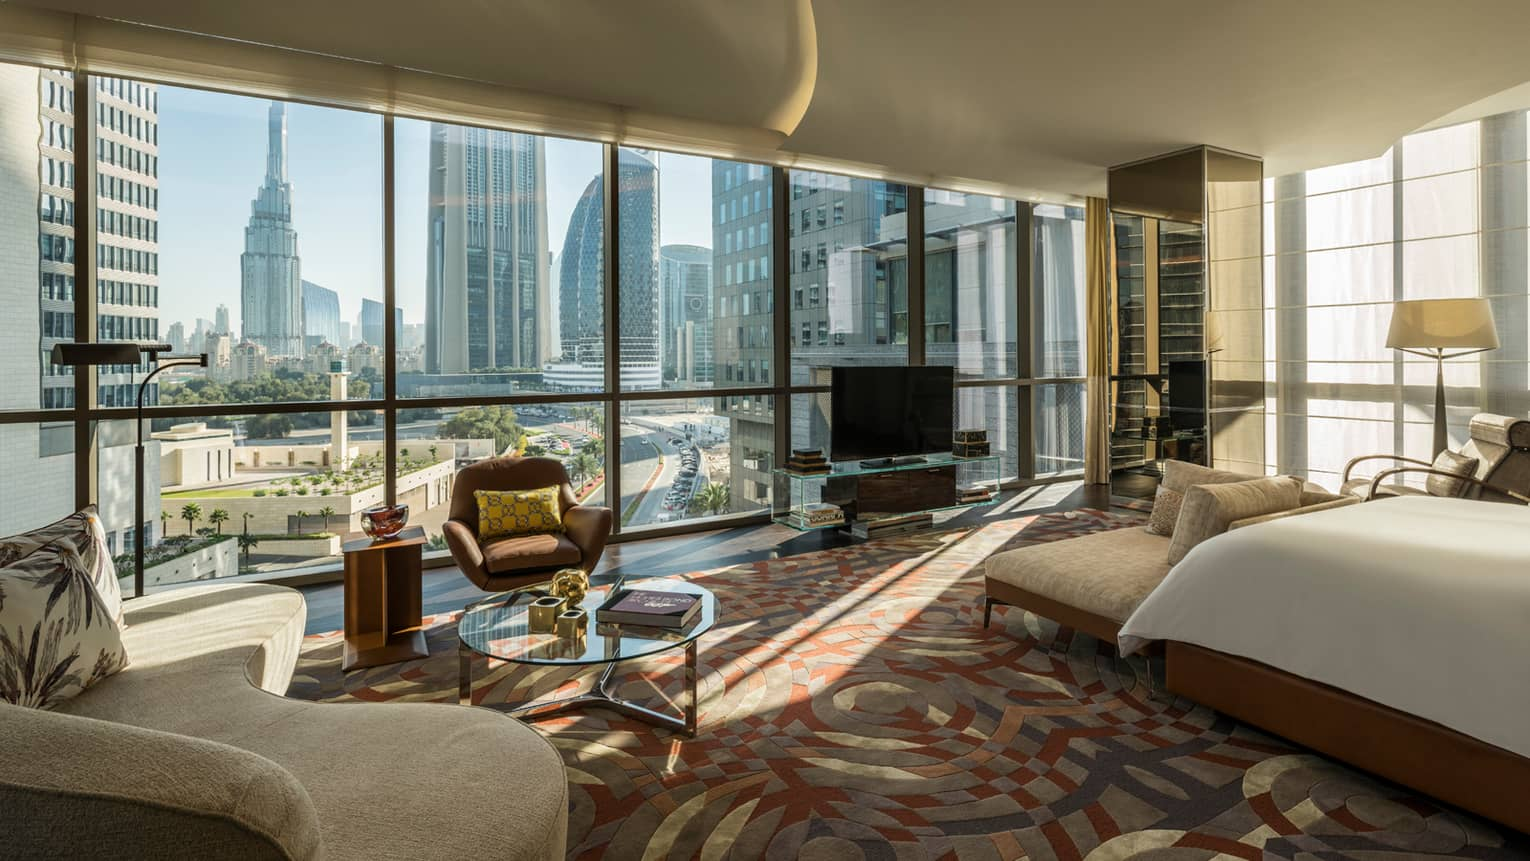 Bright Penthouse Suite with bed, sofa in front of wall of floor-to-ceiling windows with Dubai city views